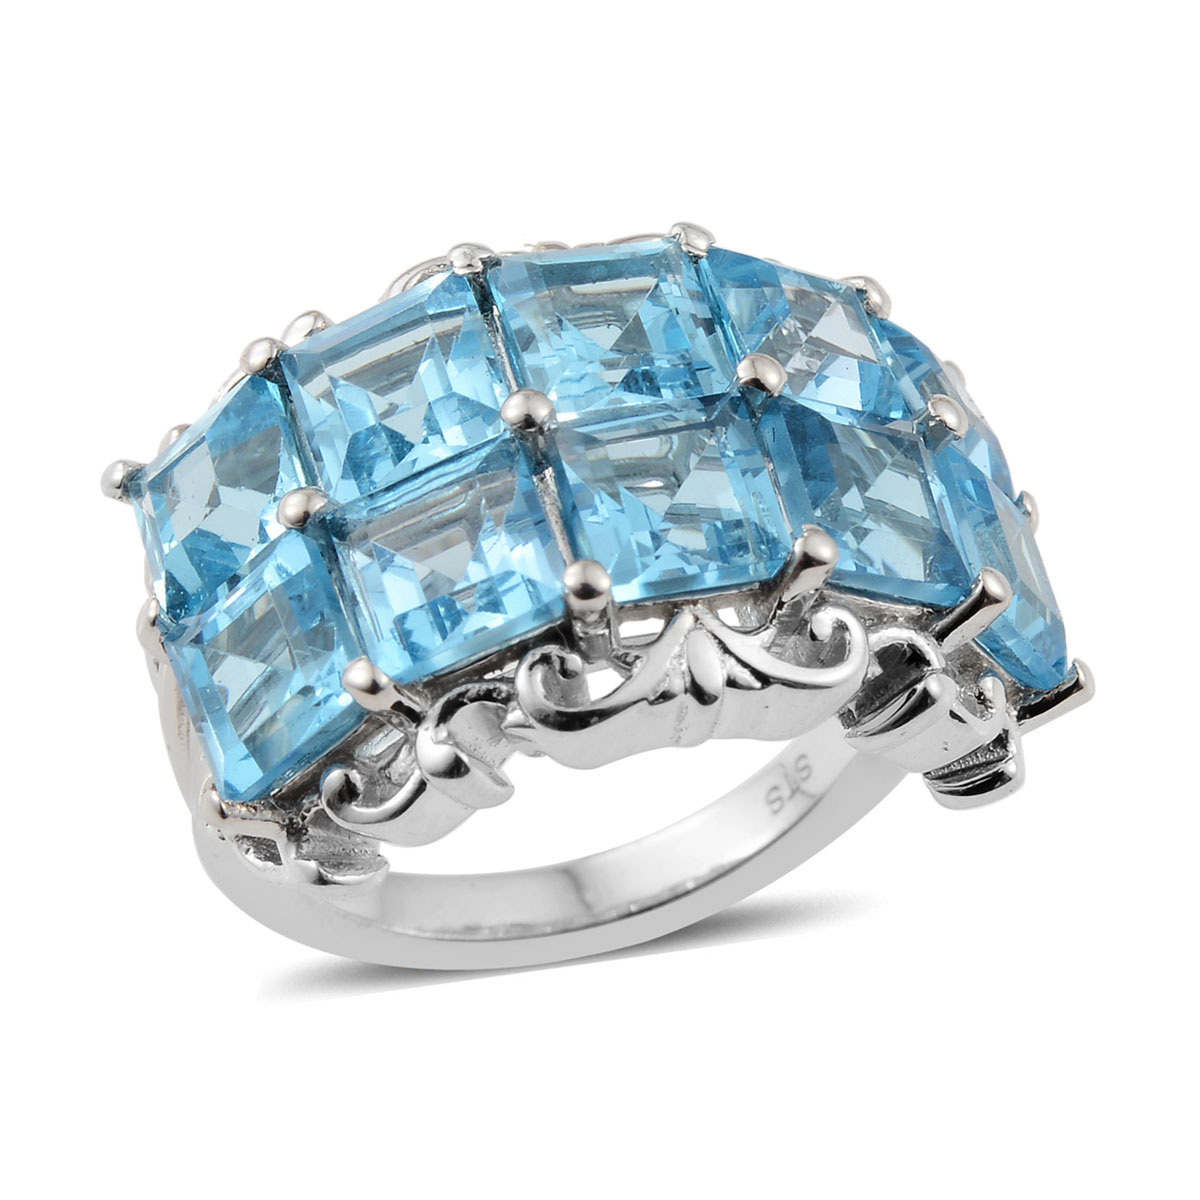 Marambaia Topaz Ring in Platinum Over Sterling Silver (Size 5.0) 8.50 ctw